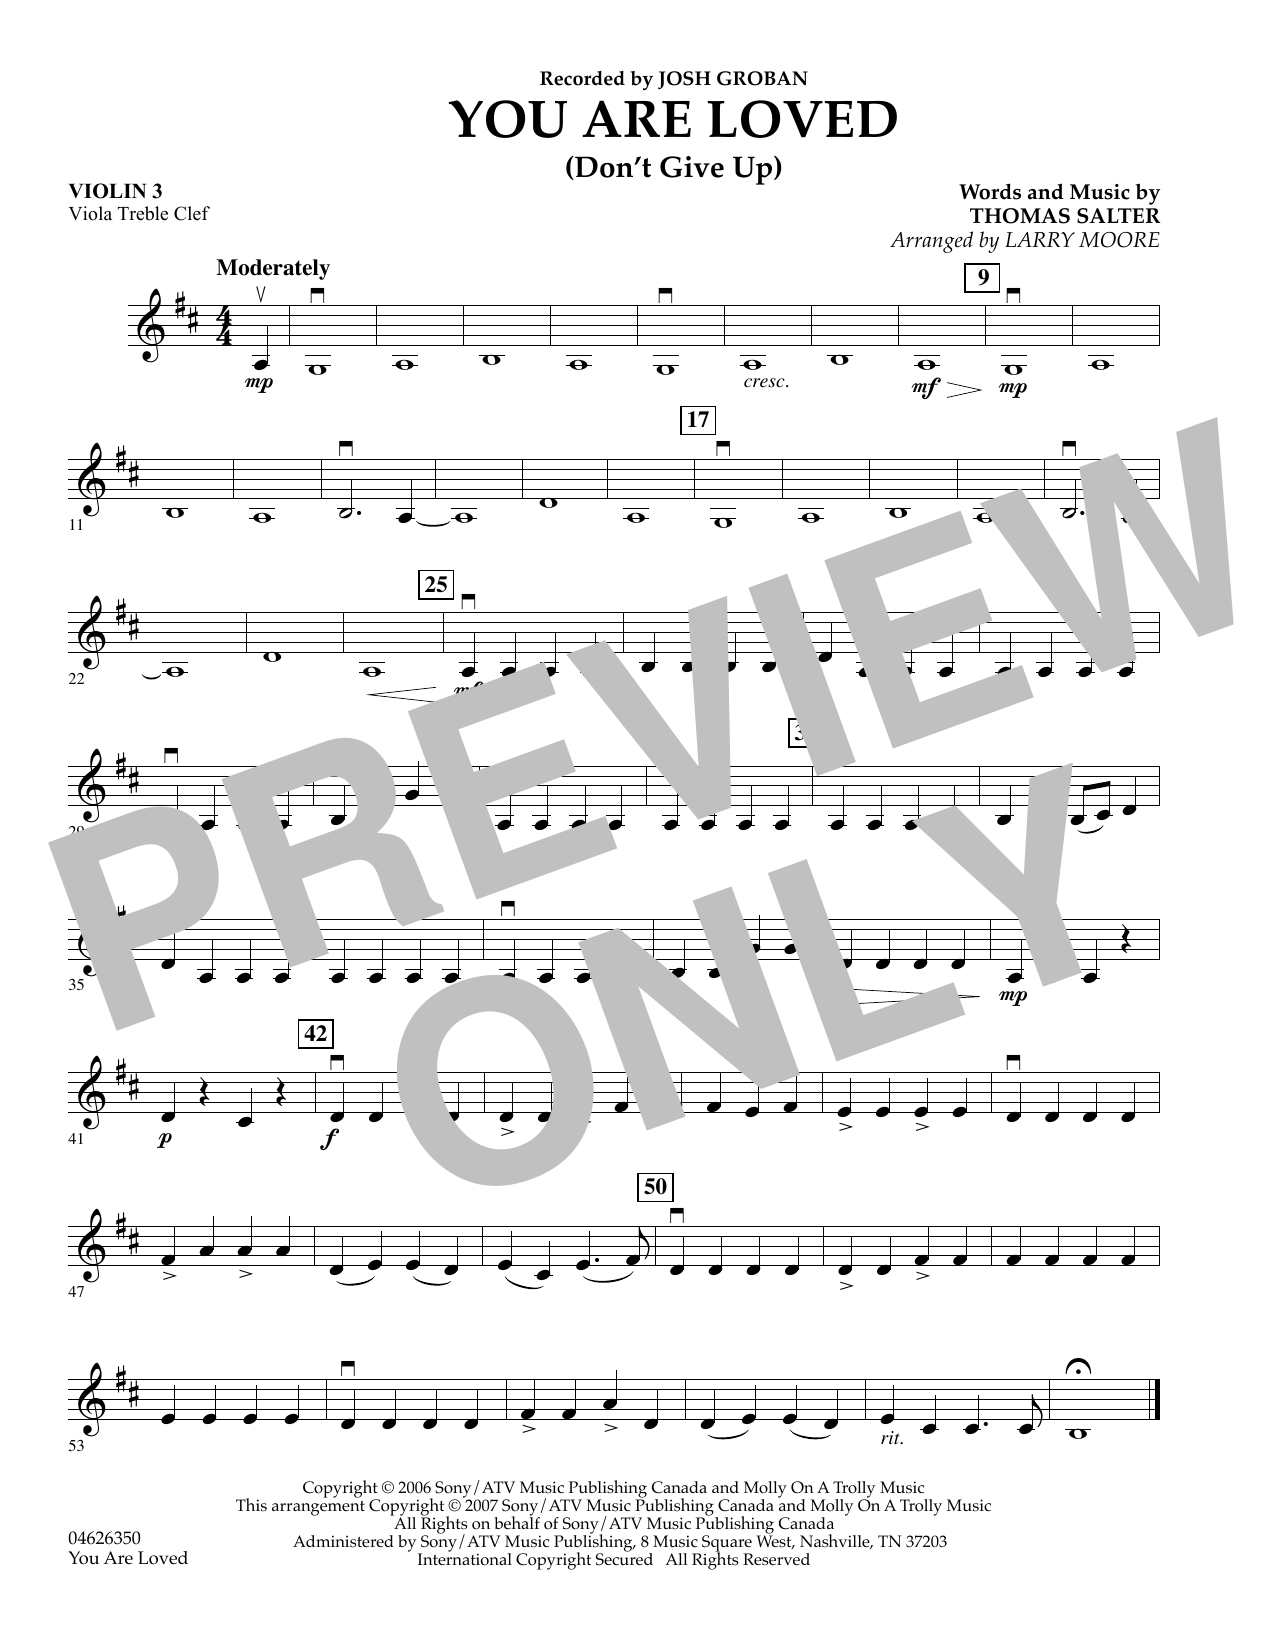 You Are Loved (Don't Give Up) - Violin 3 (Viola Treble Clef) sheet music